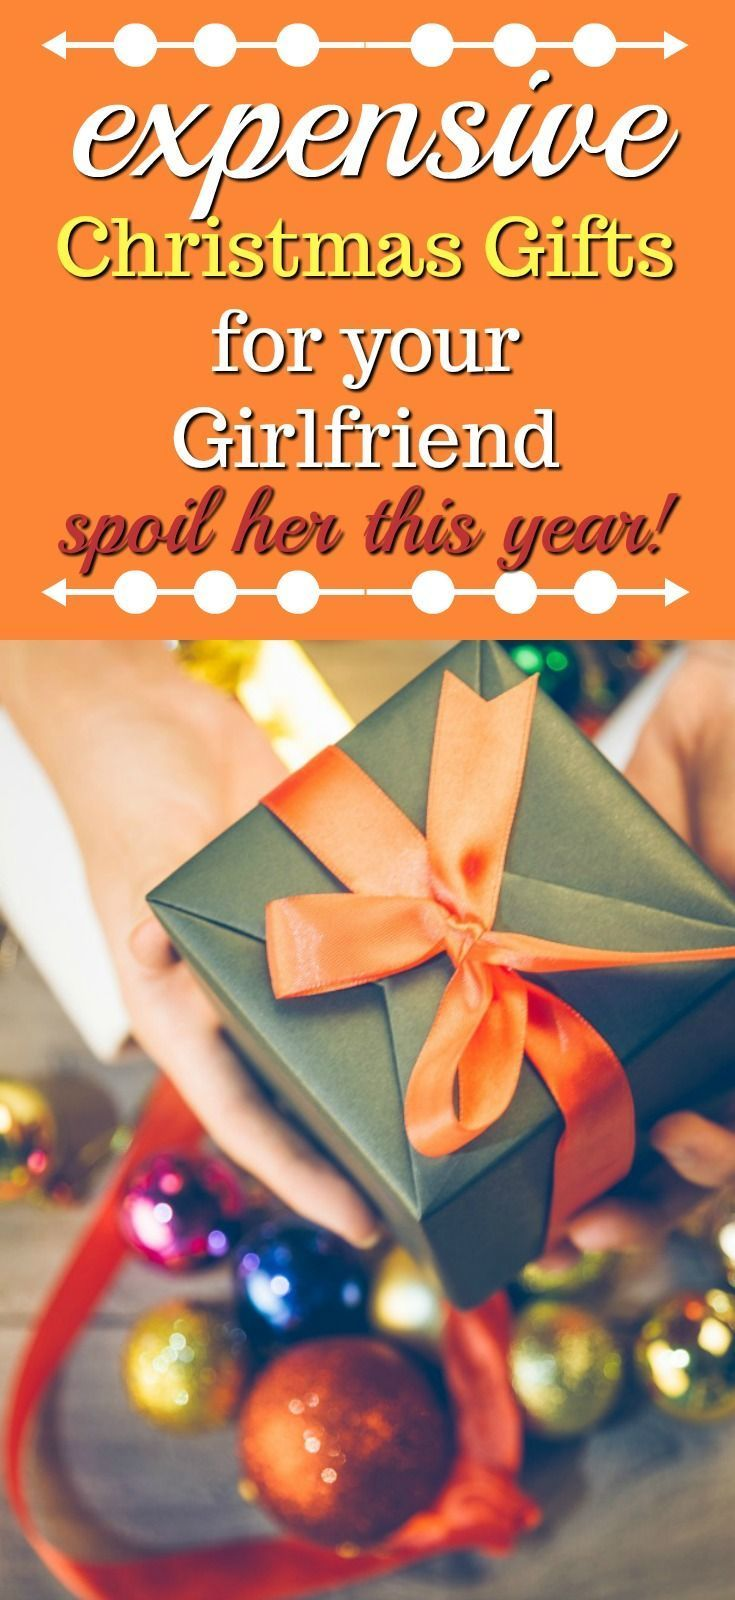 20 Expensive Christmas Gifts for Your Girlfriend | Gifts ...